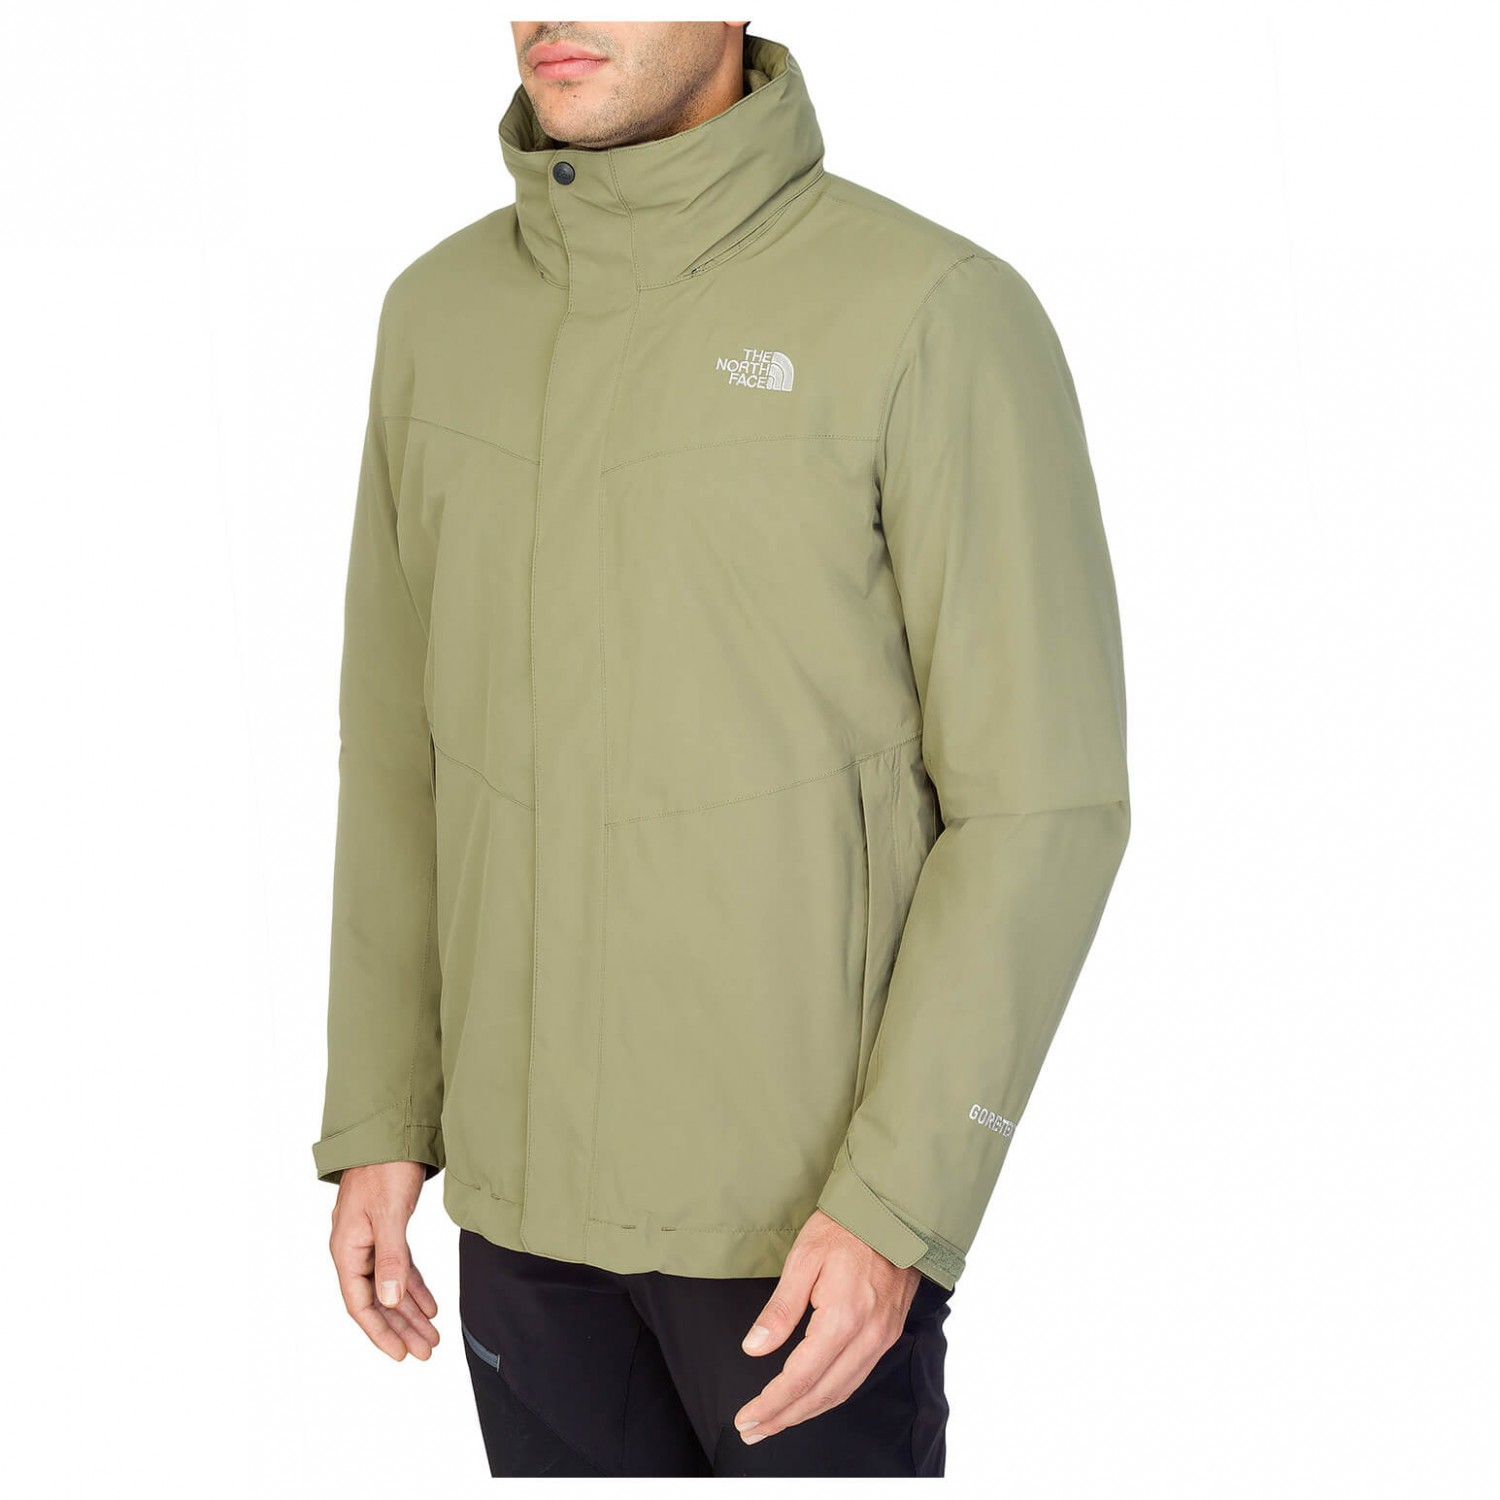 a1128f7e6 the north face all terrain triclimate jacket gore tex ups